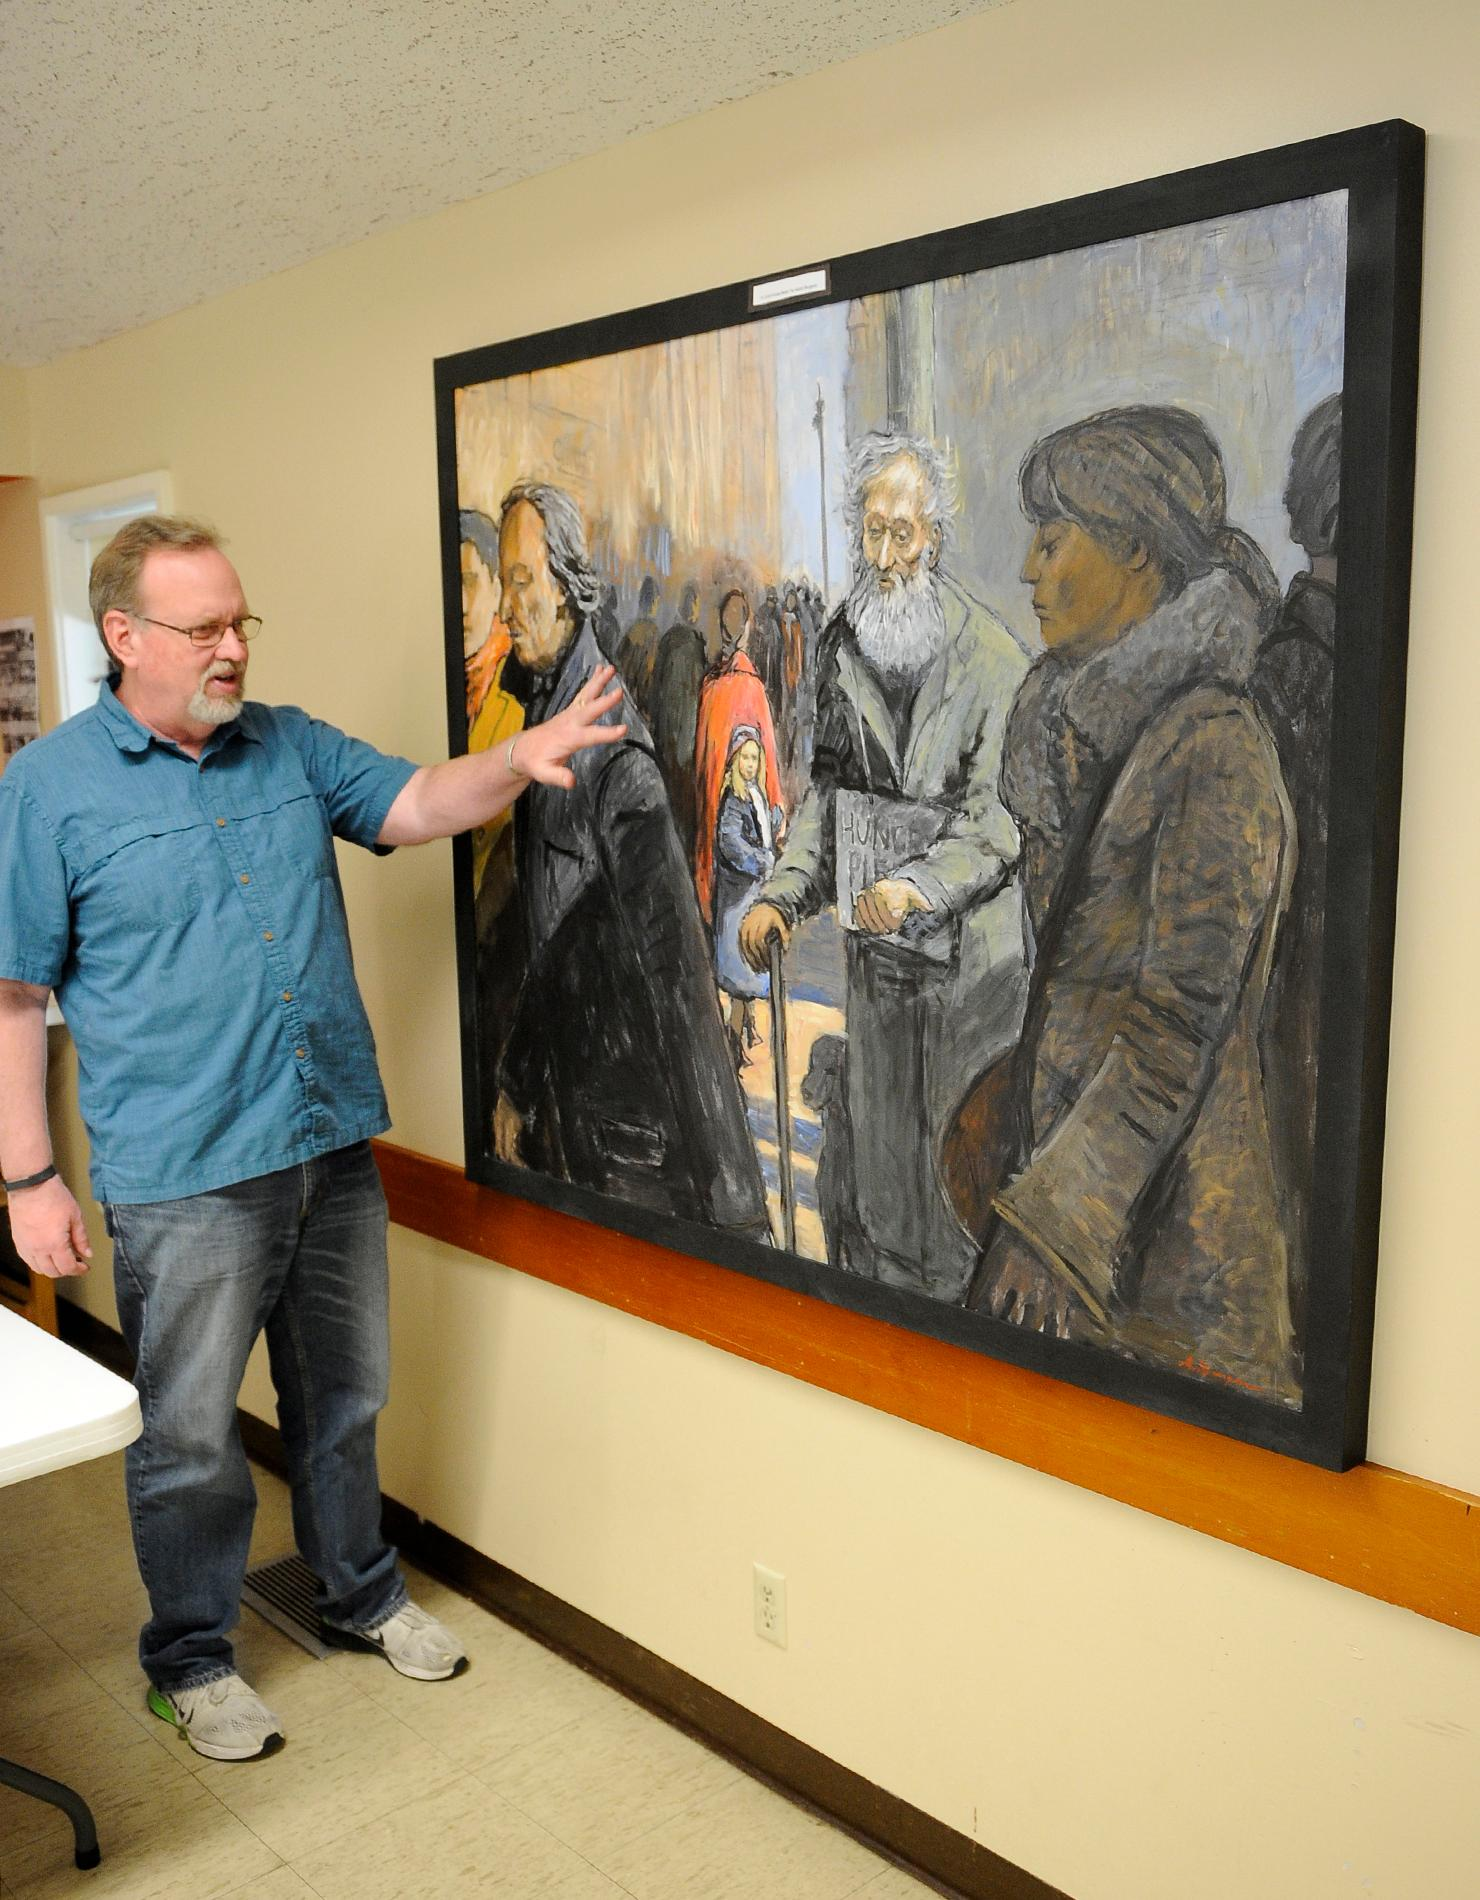 "The Rev. Dan Fowler of the First Presbyterian Church talks about what he likes about the painting ""A Child Knows Better."" Andy Atkinson / Daily Tidings"